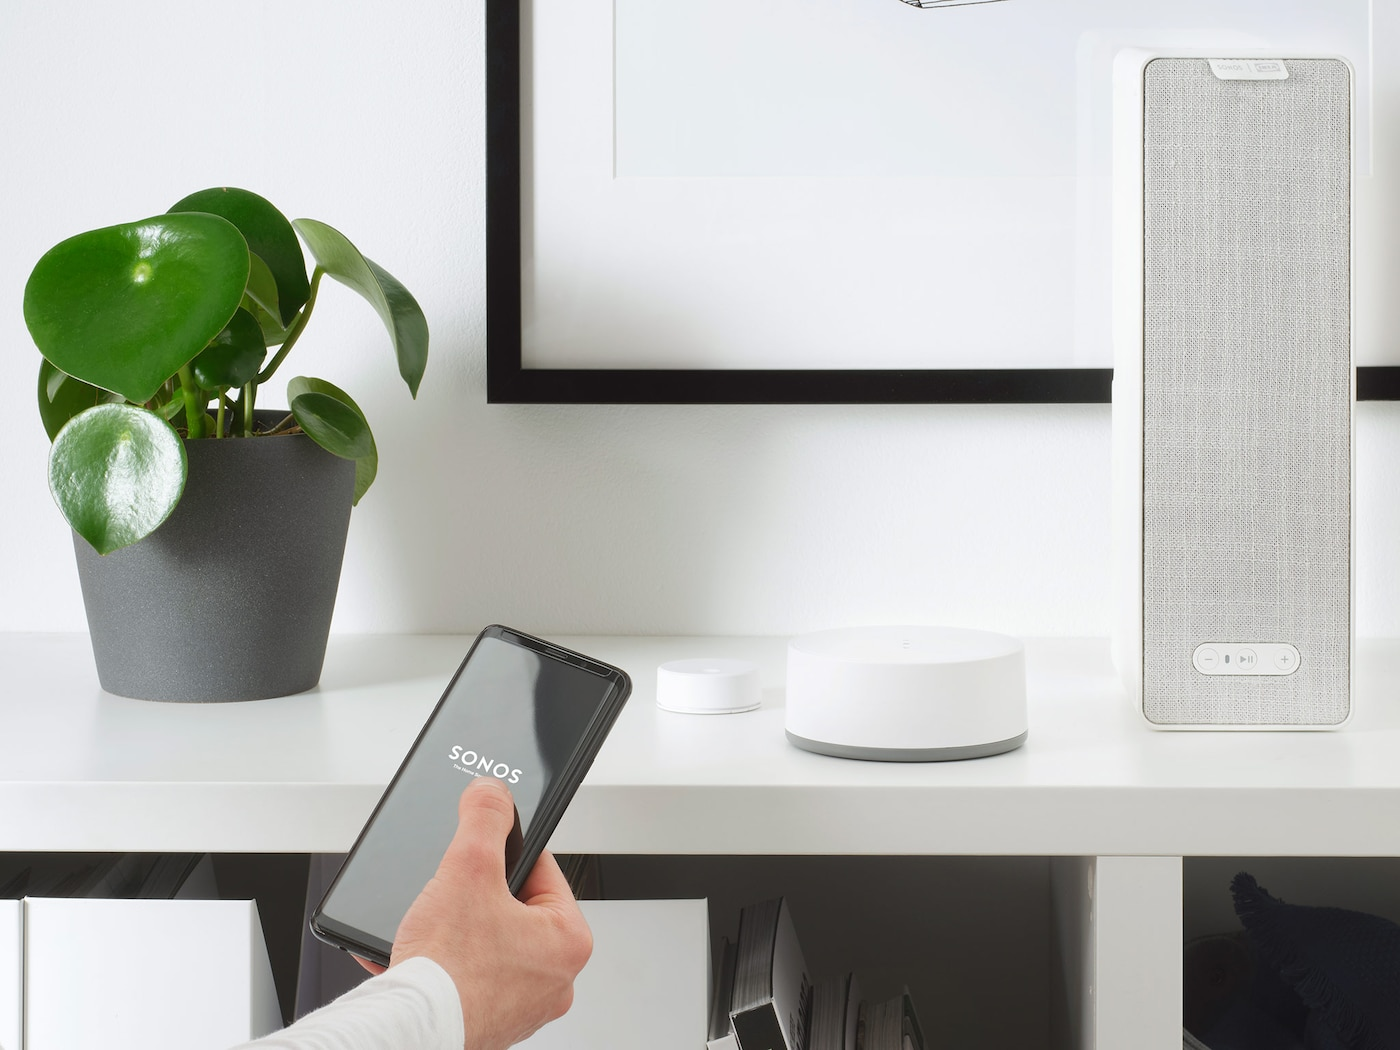 SYMFONISK WiFi speaker in white standing on top of a bookcase in a livingroom environment.